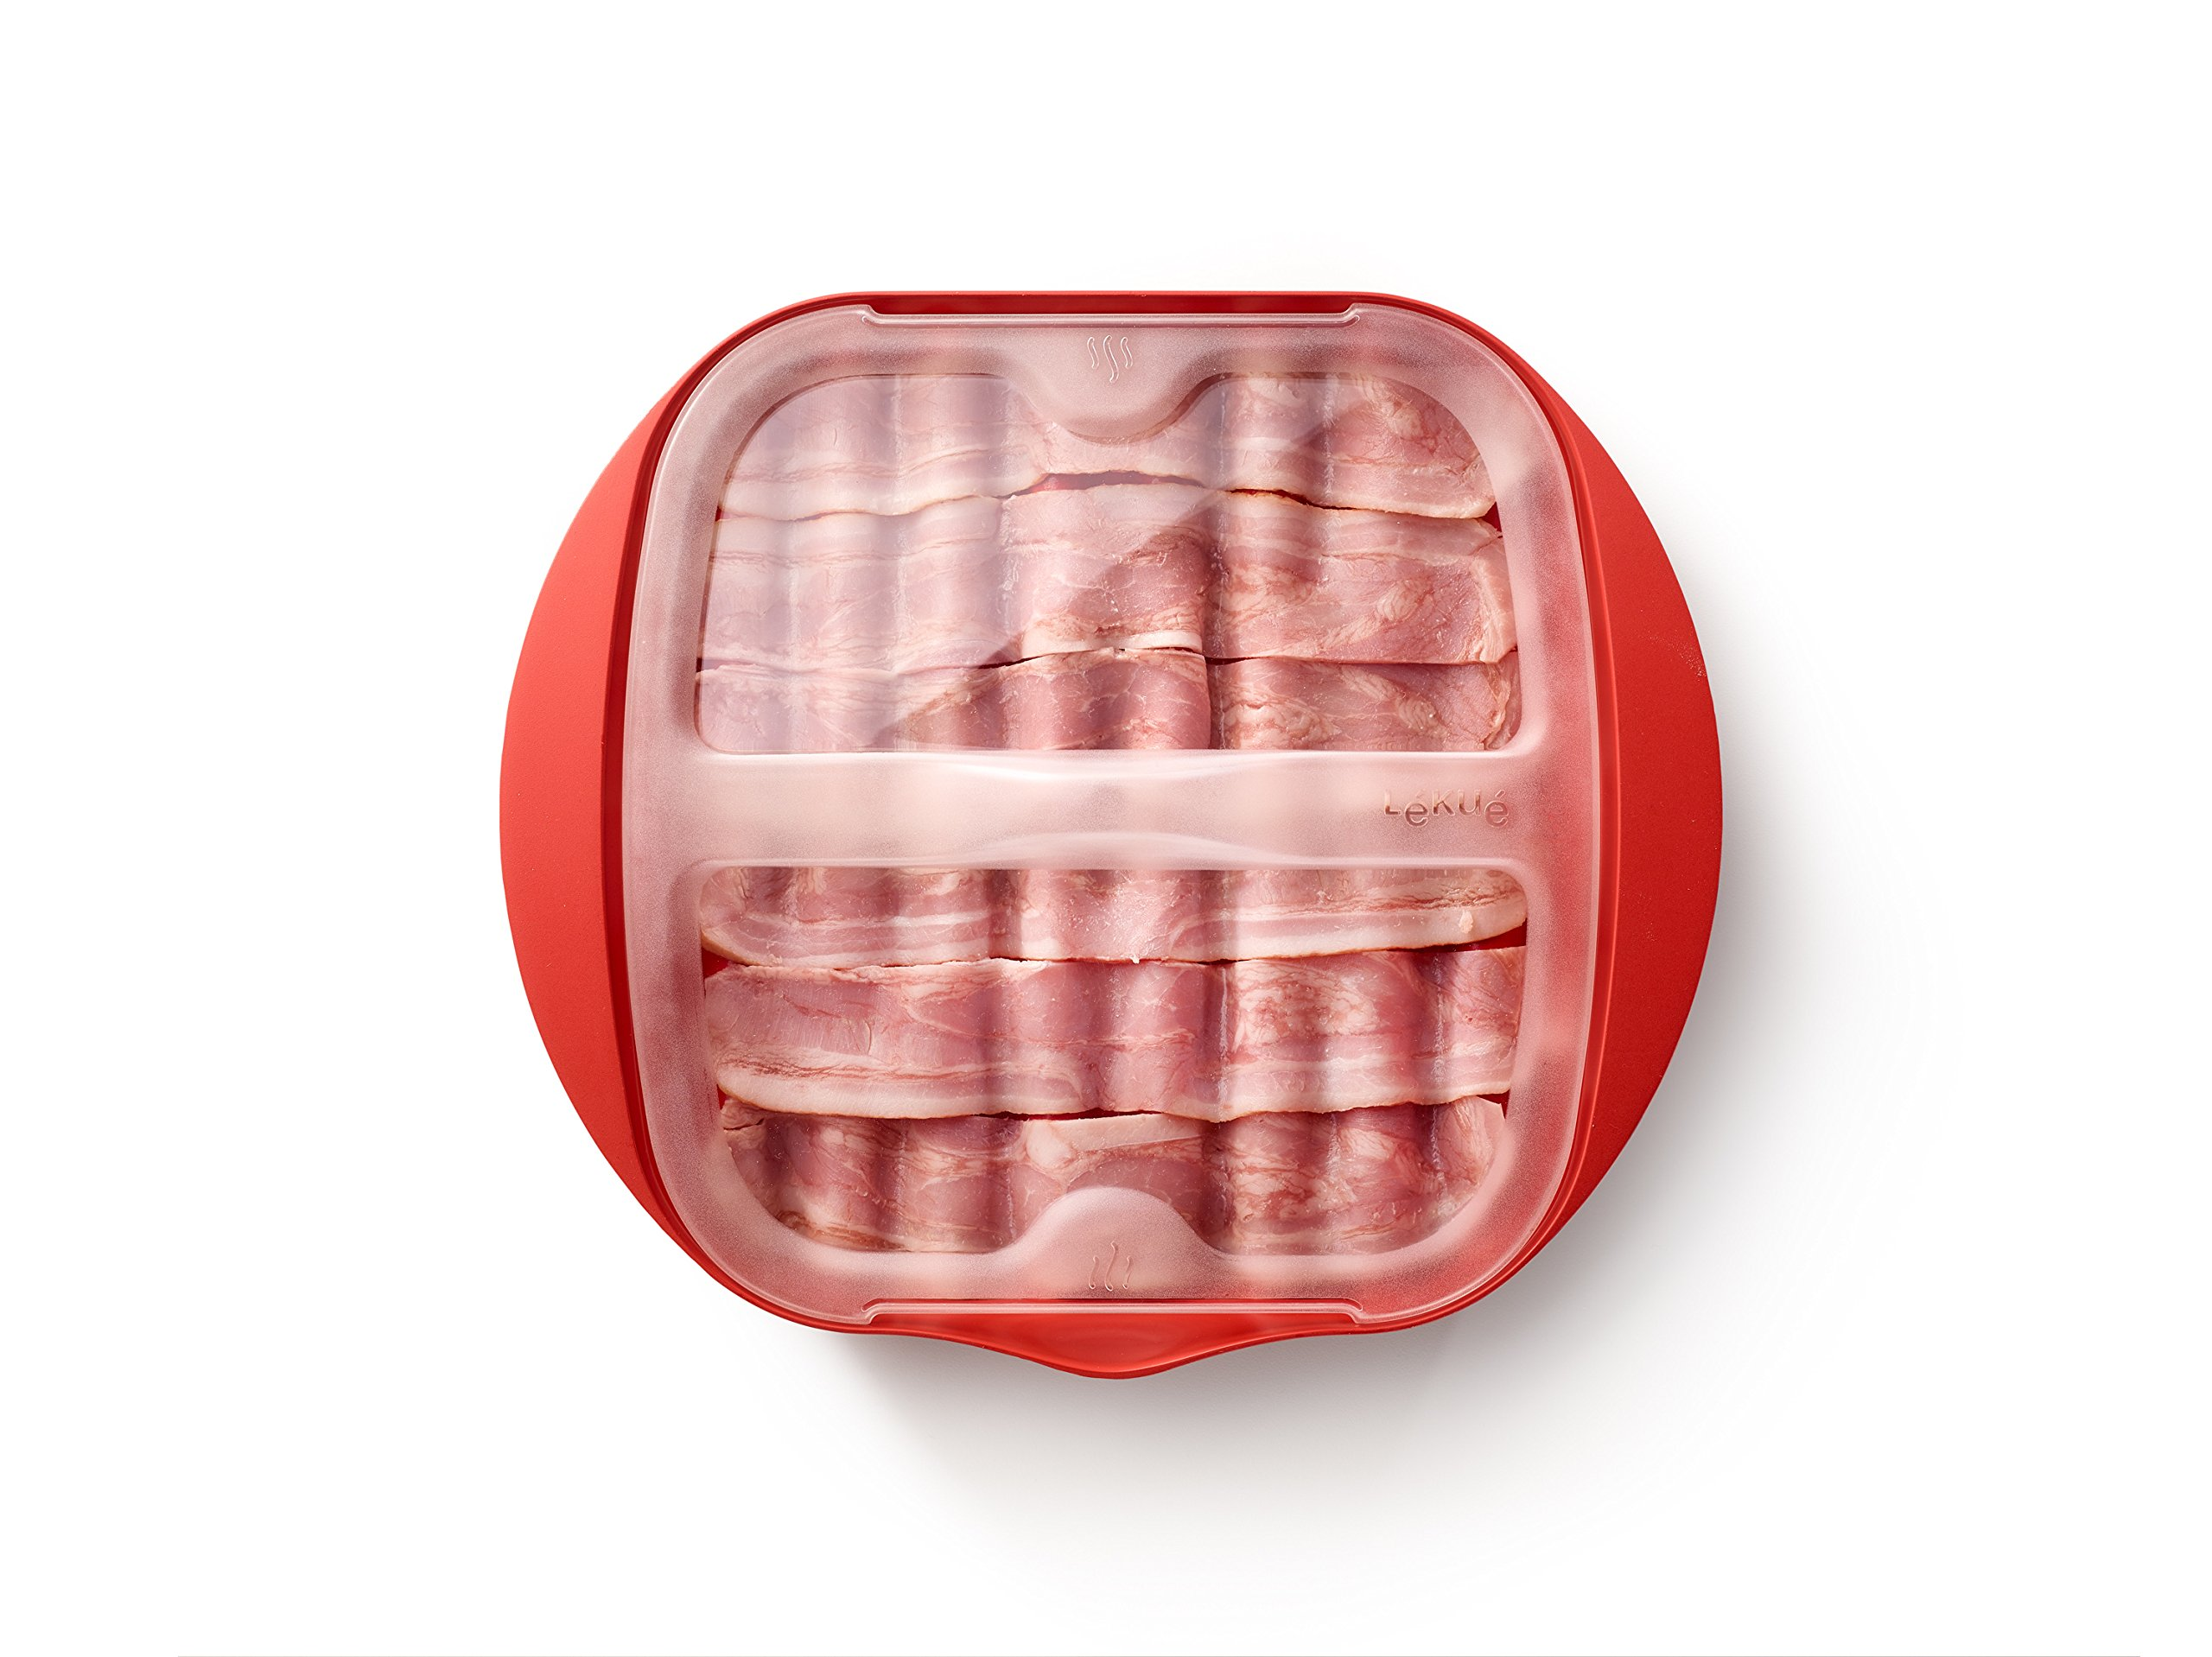 Lekue Microwave Bacon Maker/Cooker with Lid, 11.02'' L x 9.8'' W x 2.3'' H, Red by Lekue (Image #4)